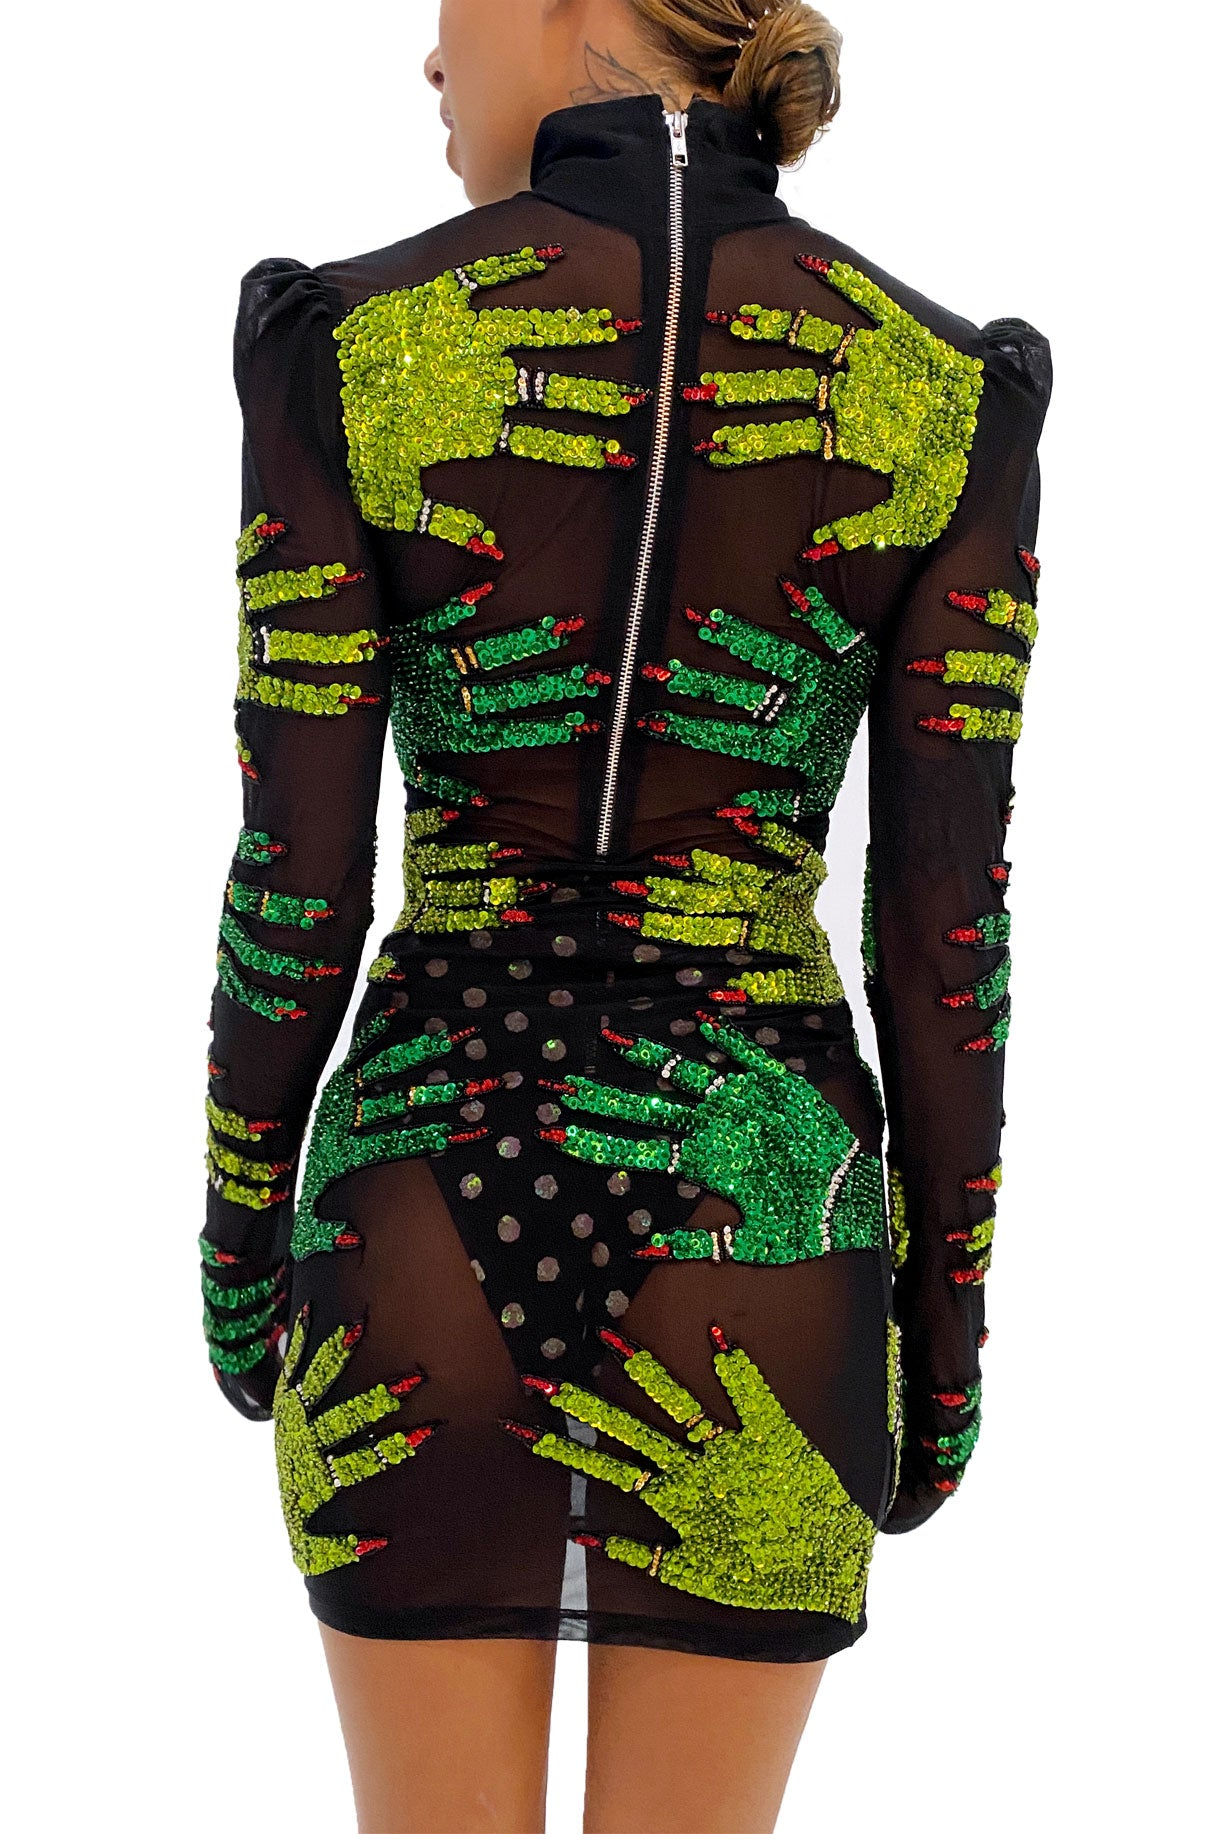 The Elixir Mesh Hands Dress